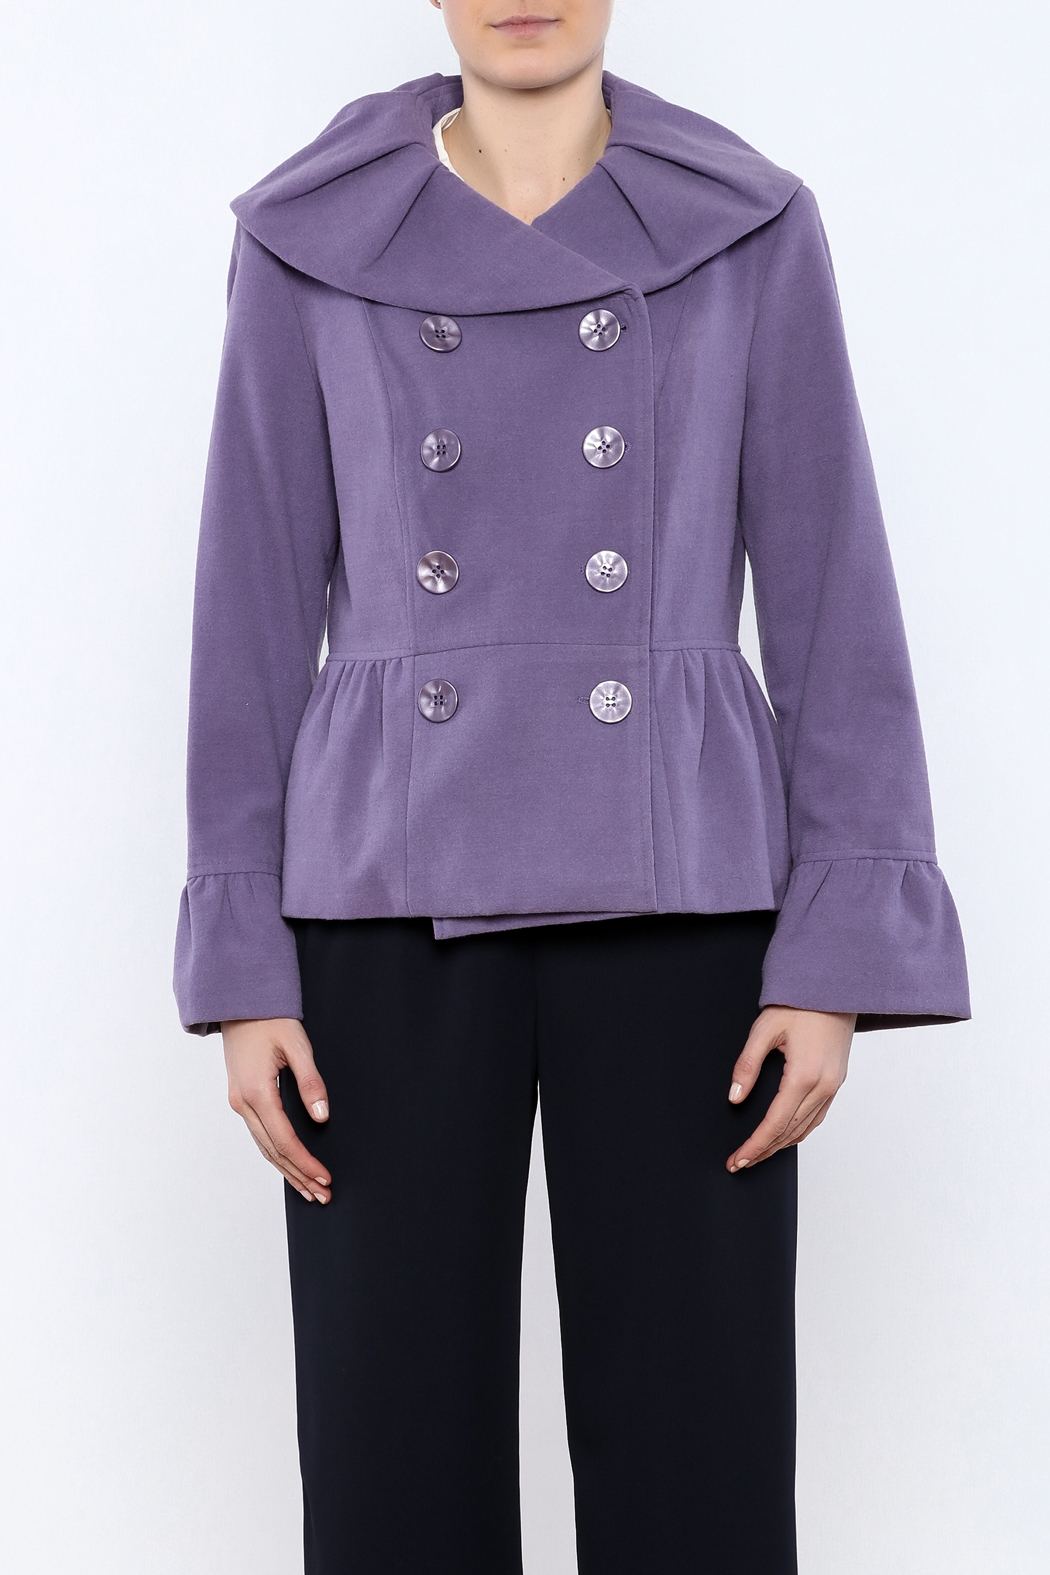 INSIGHT NYC Lavender Peacoat - Side Cropped Image